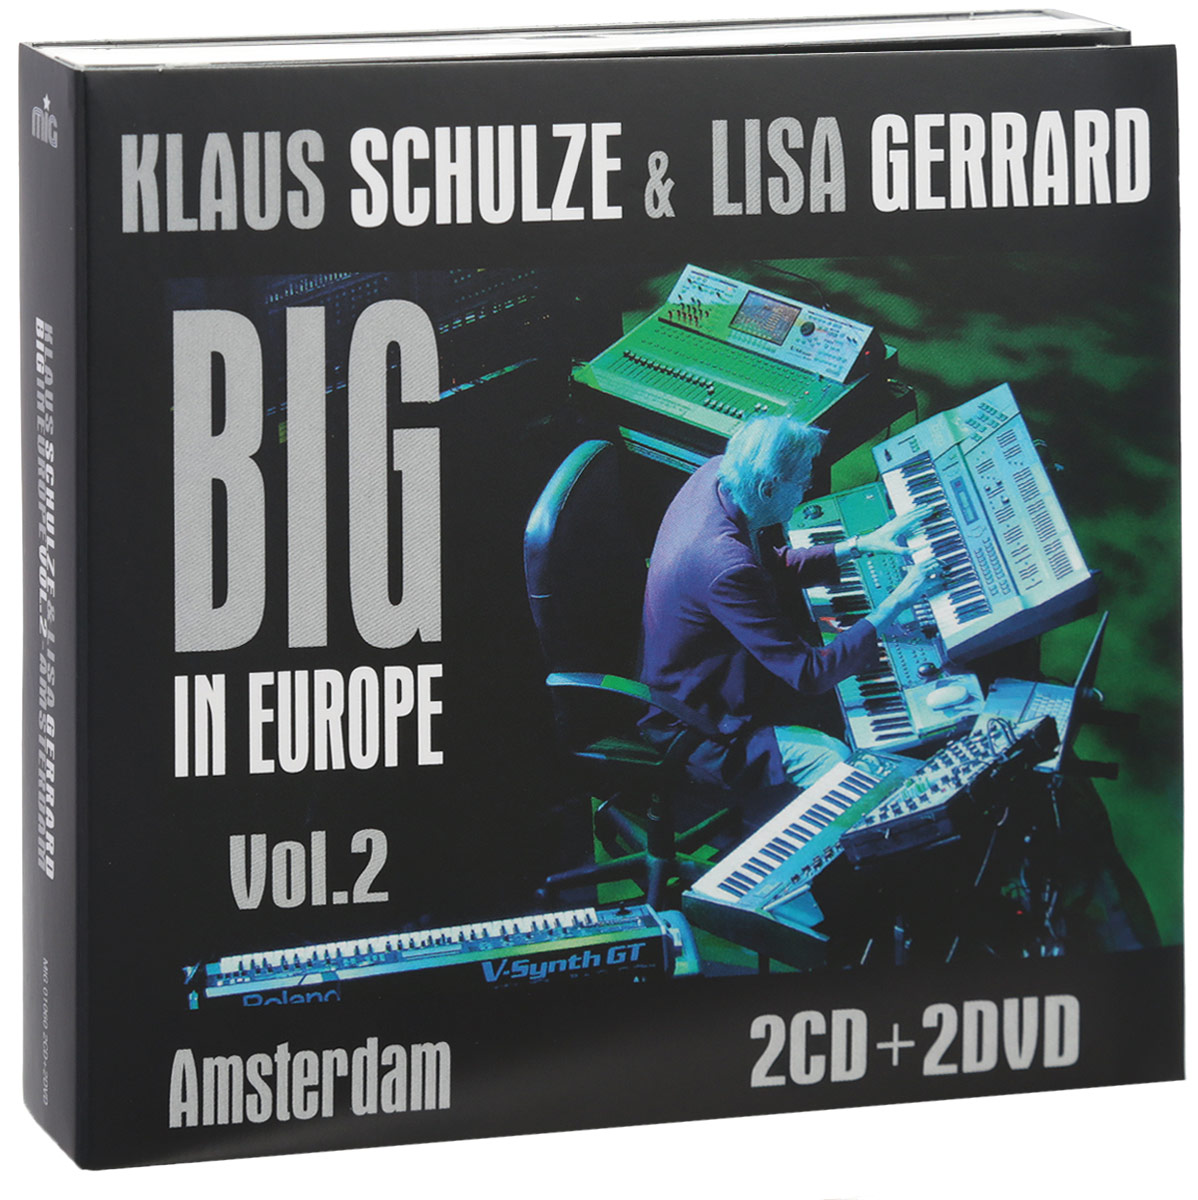 Клаус Шульце,Лайза Джеррард Klaus Schulze & Lisa Gerrard. Big In Europe Vol. 2. Amsterdam (2 CD + 2 DVD) eachine h99w wifi fpv with 2 0mp 720p hd camera 2 4g 6 axle headless mode rc quadcopter rtf mode 2 color in blue and green